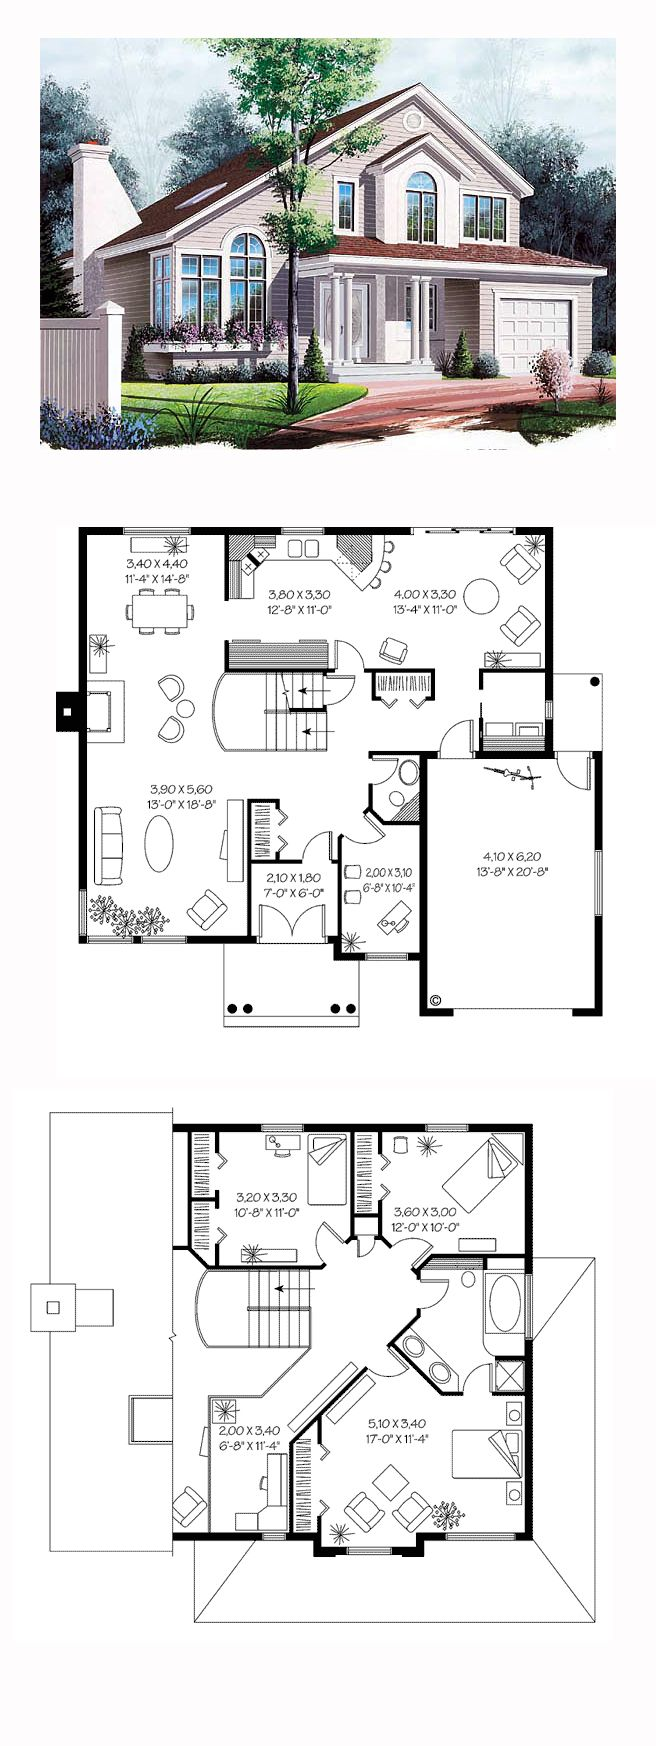 17 best images about saltbox house plans on pinterest Saltbox cabin plans